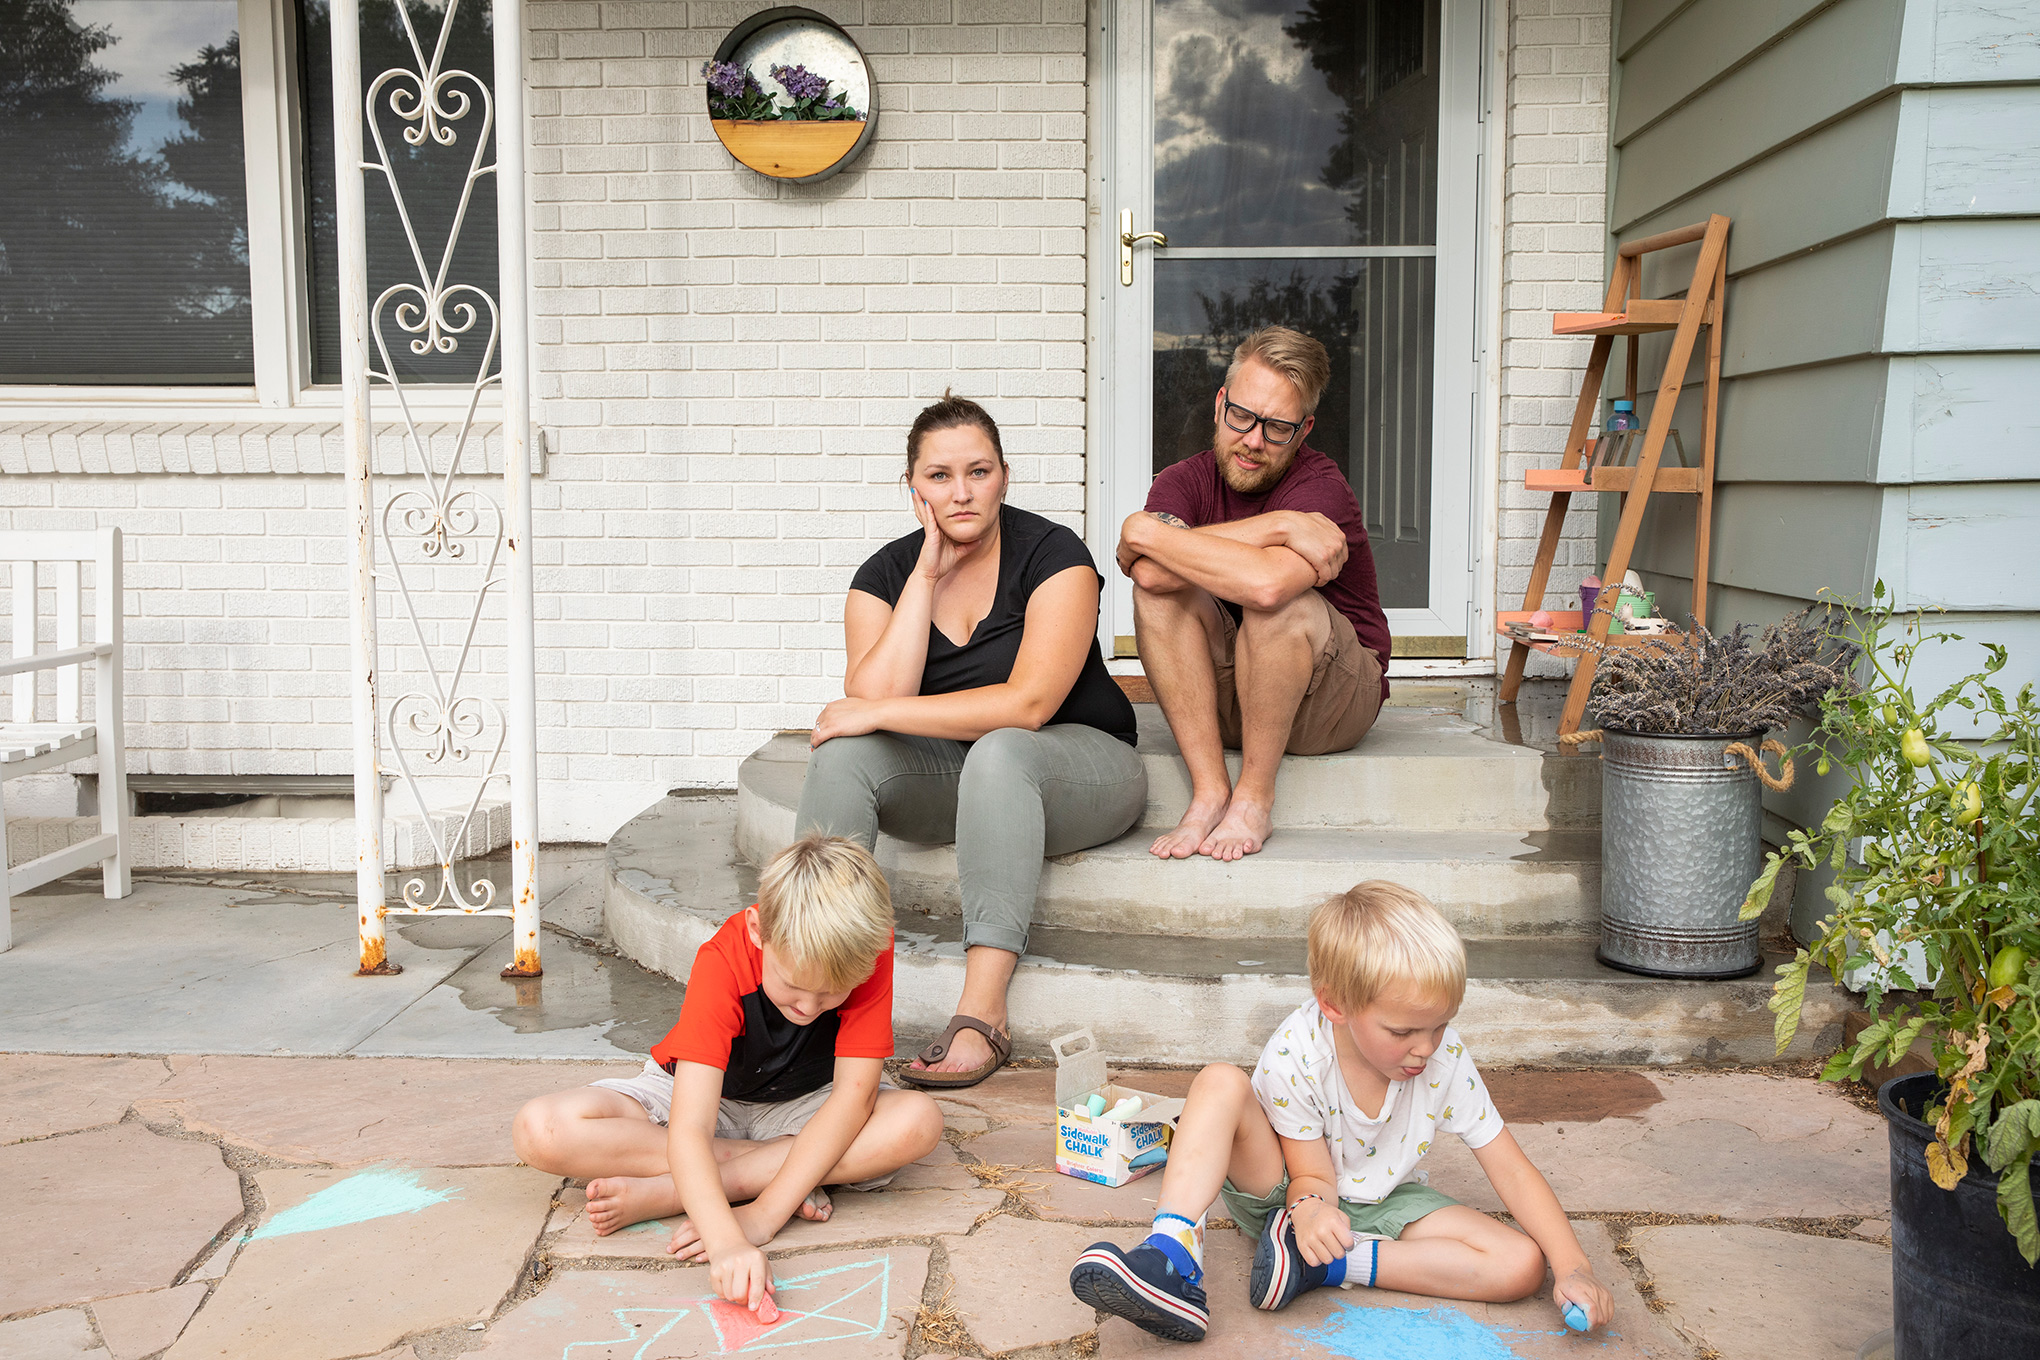 Kayla Brim with her family, outside their home in Caldwell, Idaho, on Aug. 11. Brim has been sick with COVID-19 since early July.